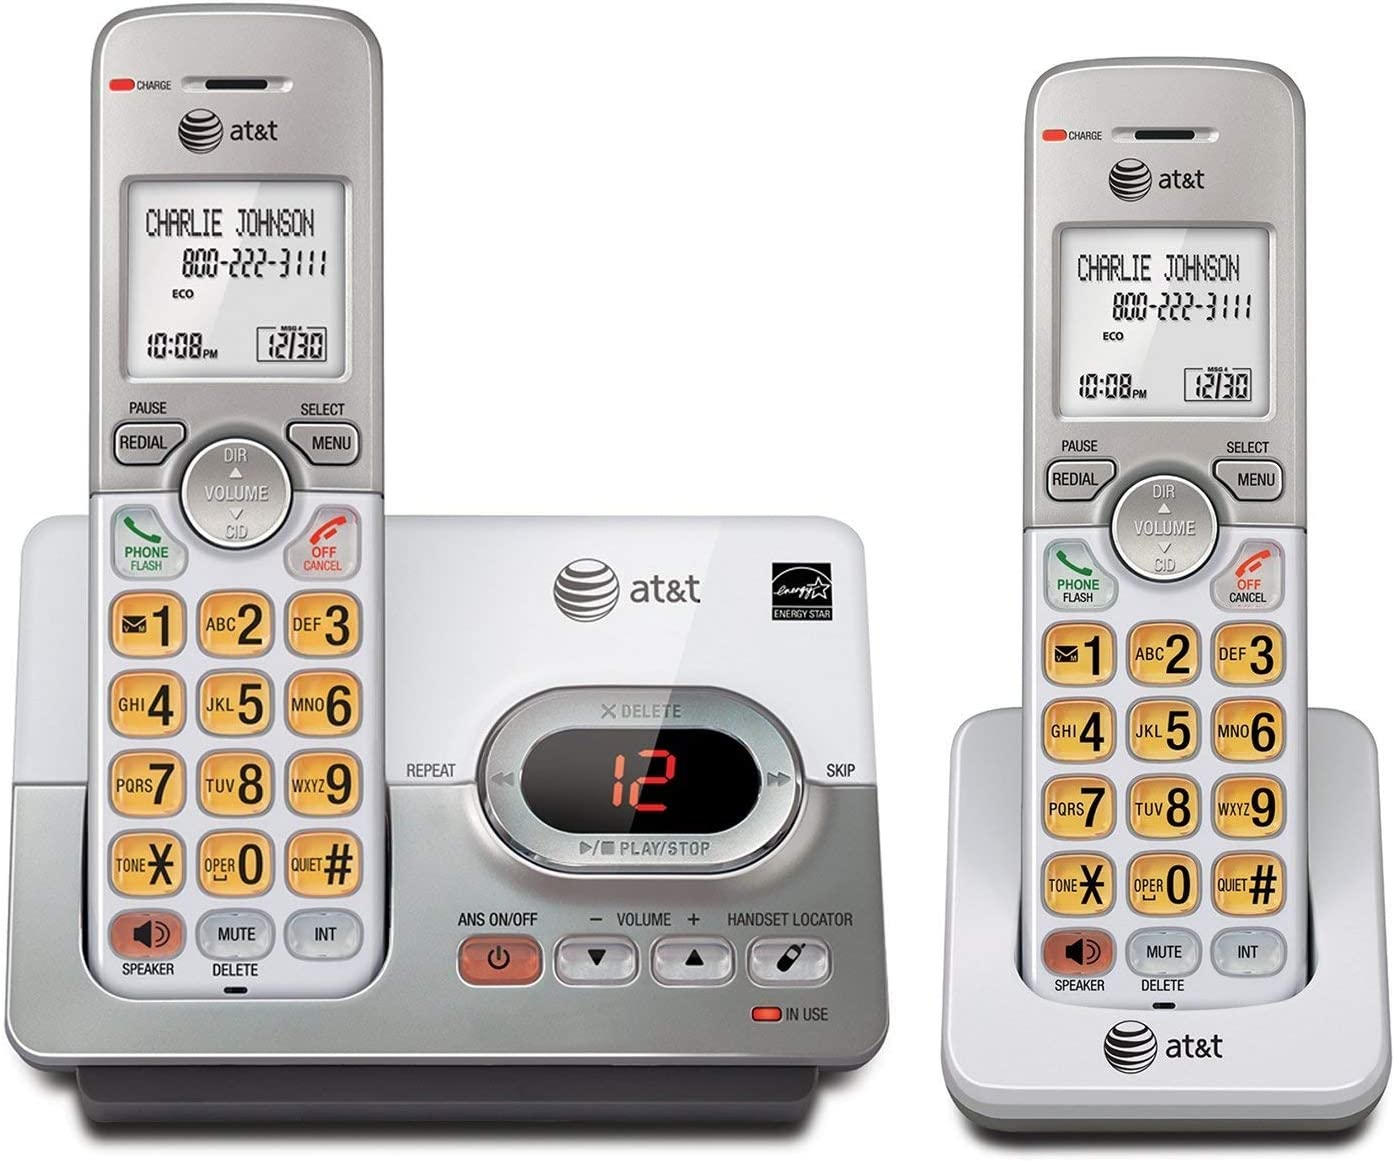 AT&T EL52203 2 Handset Cordless Answering System with Caller ID/Call Waiting (Renewed)